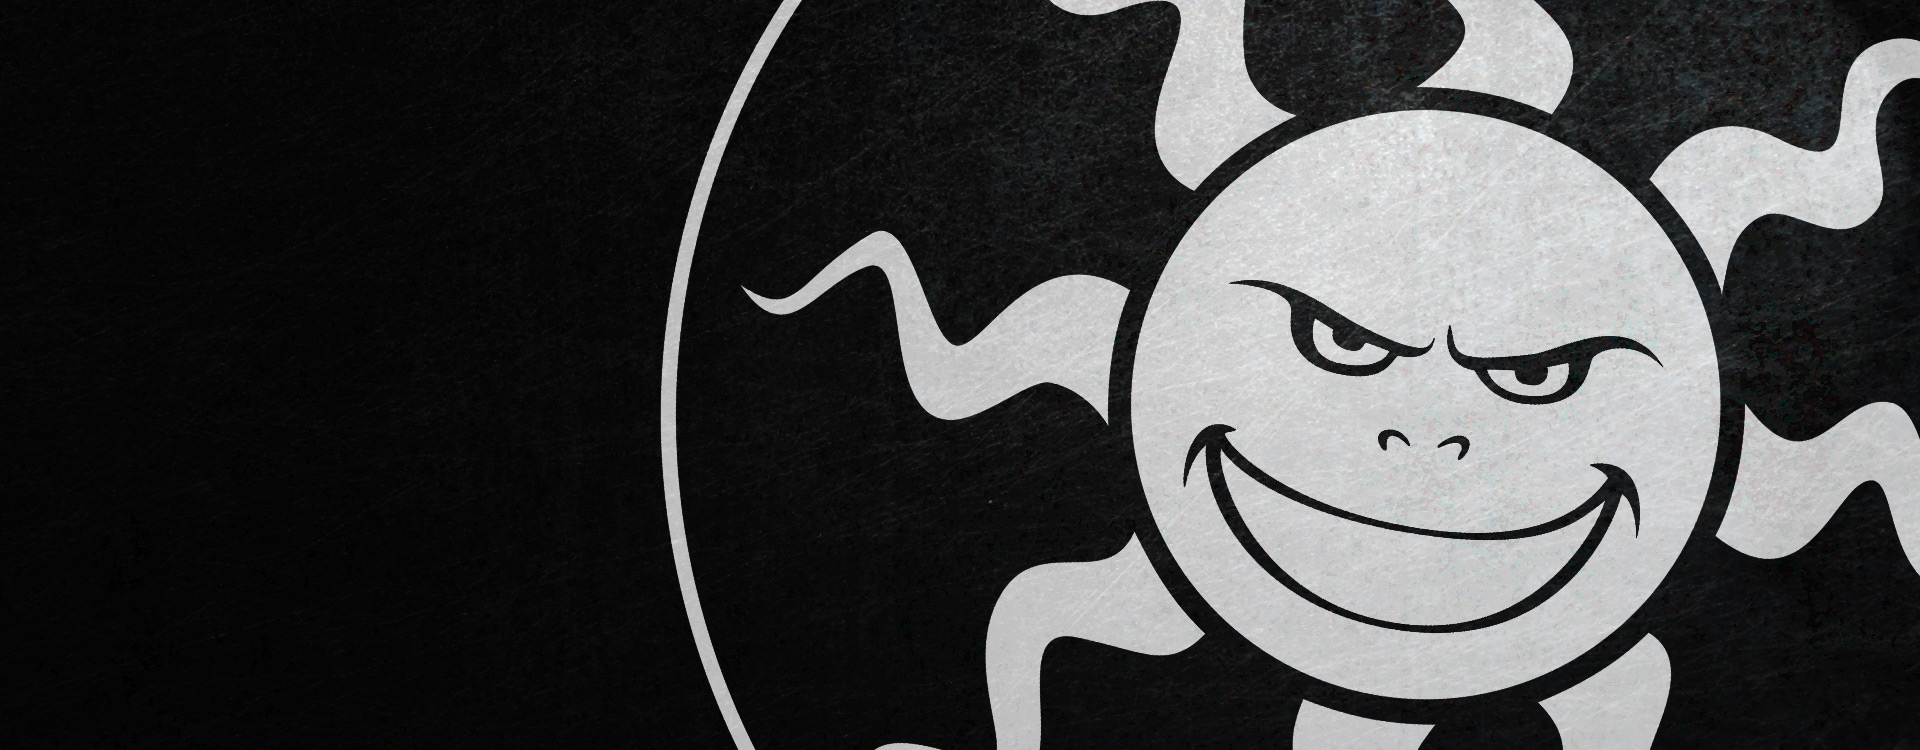 Salutations and Welcome to an Updated Starbreeze.com Experience